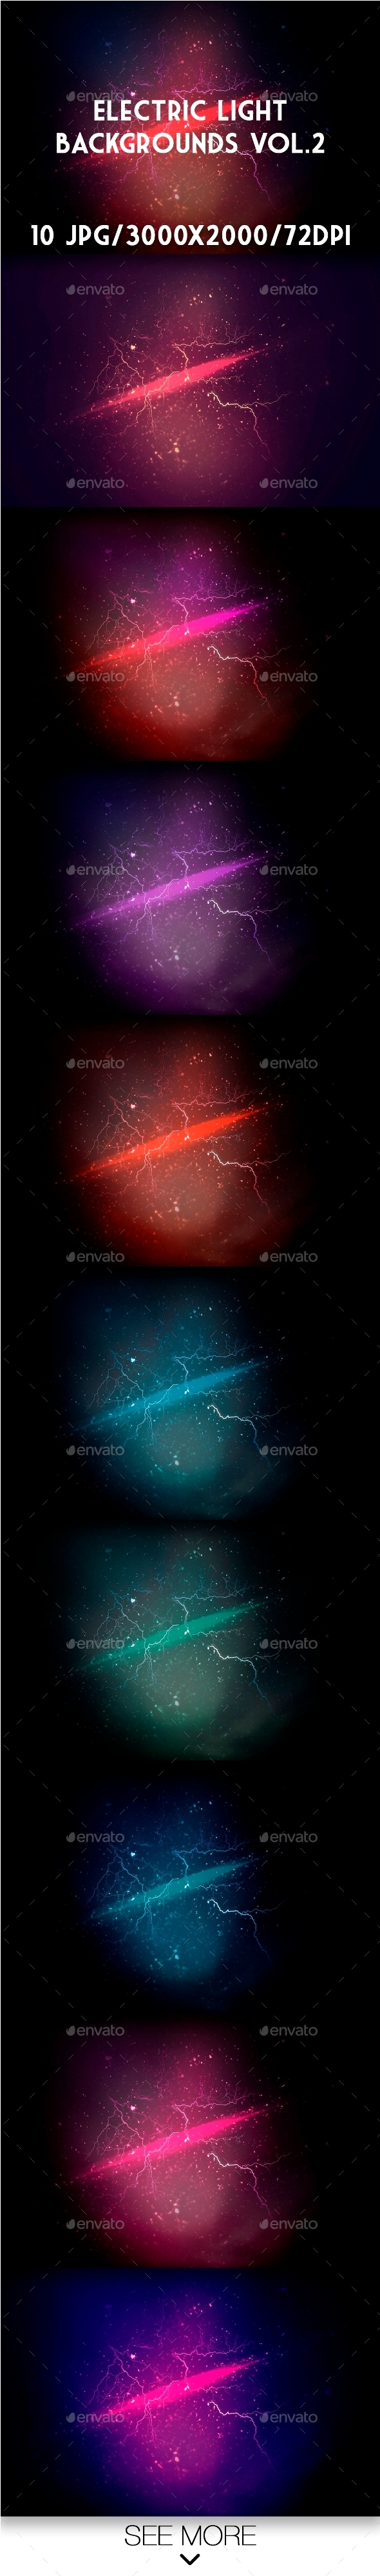 Electric Light Backgrounds Vol.2 - Backgrounds Graphics